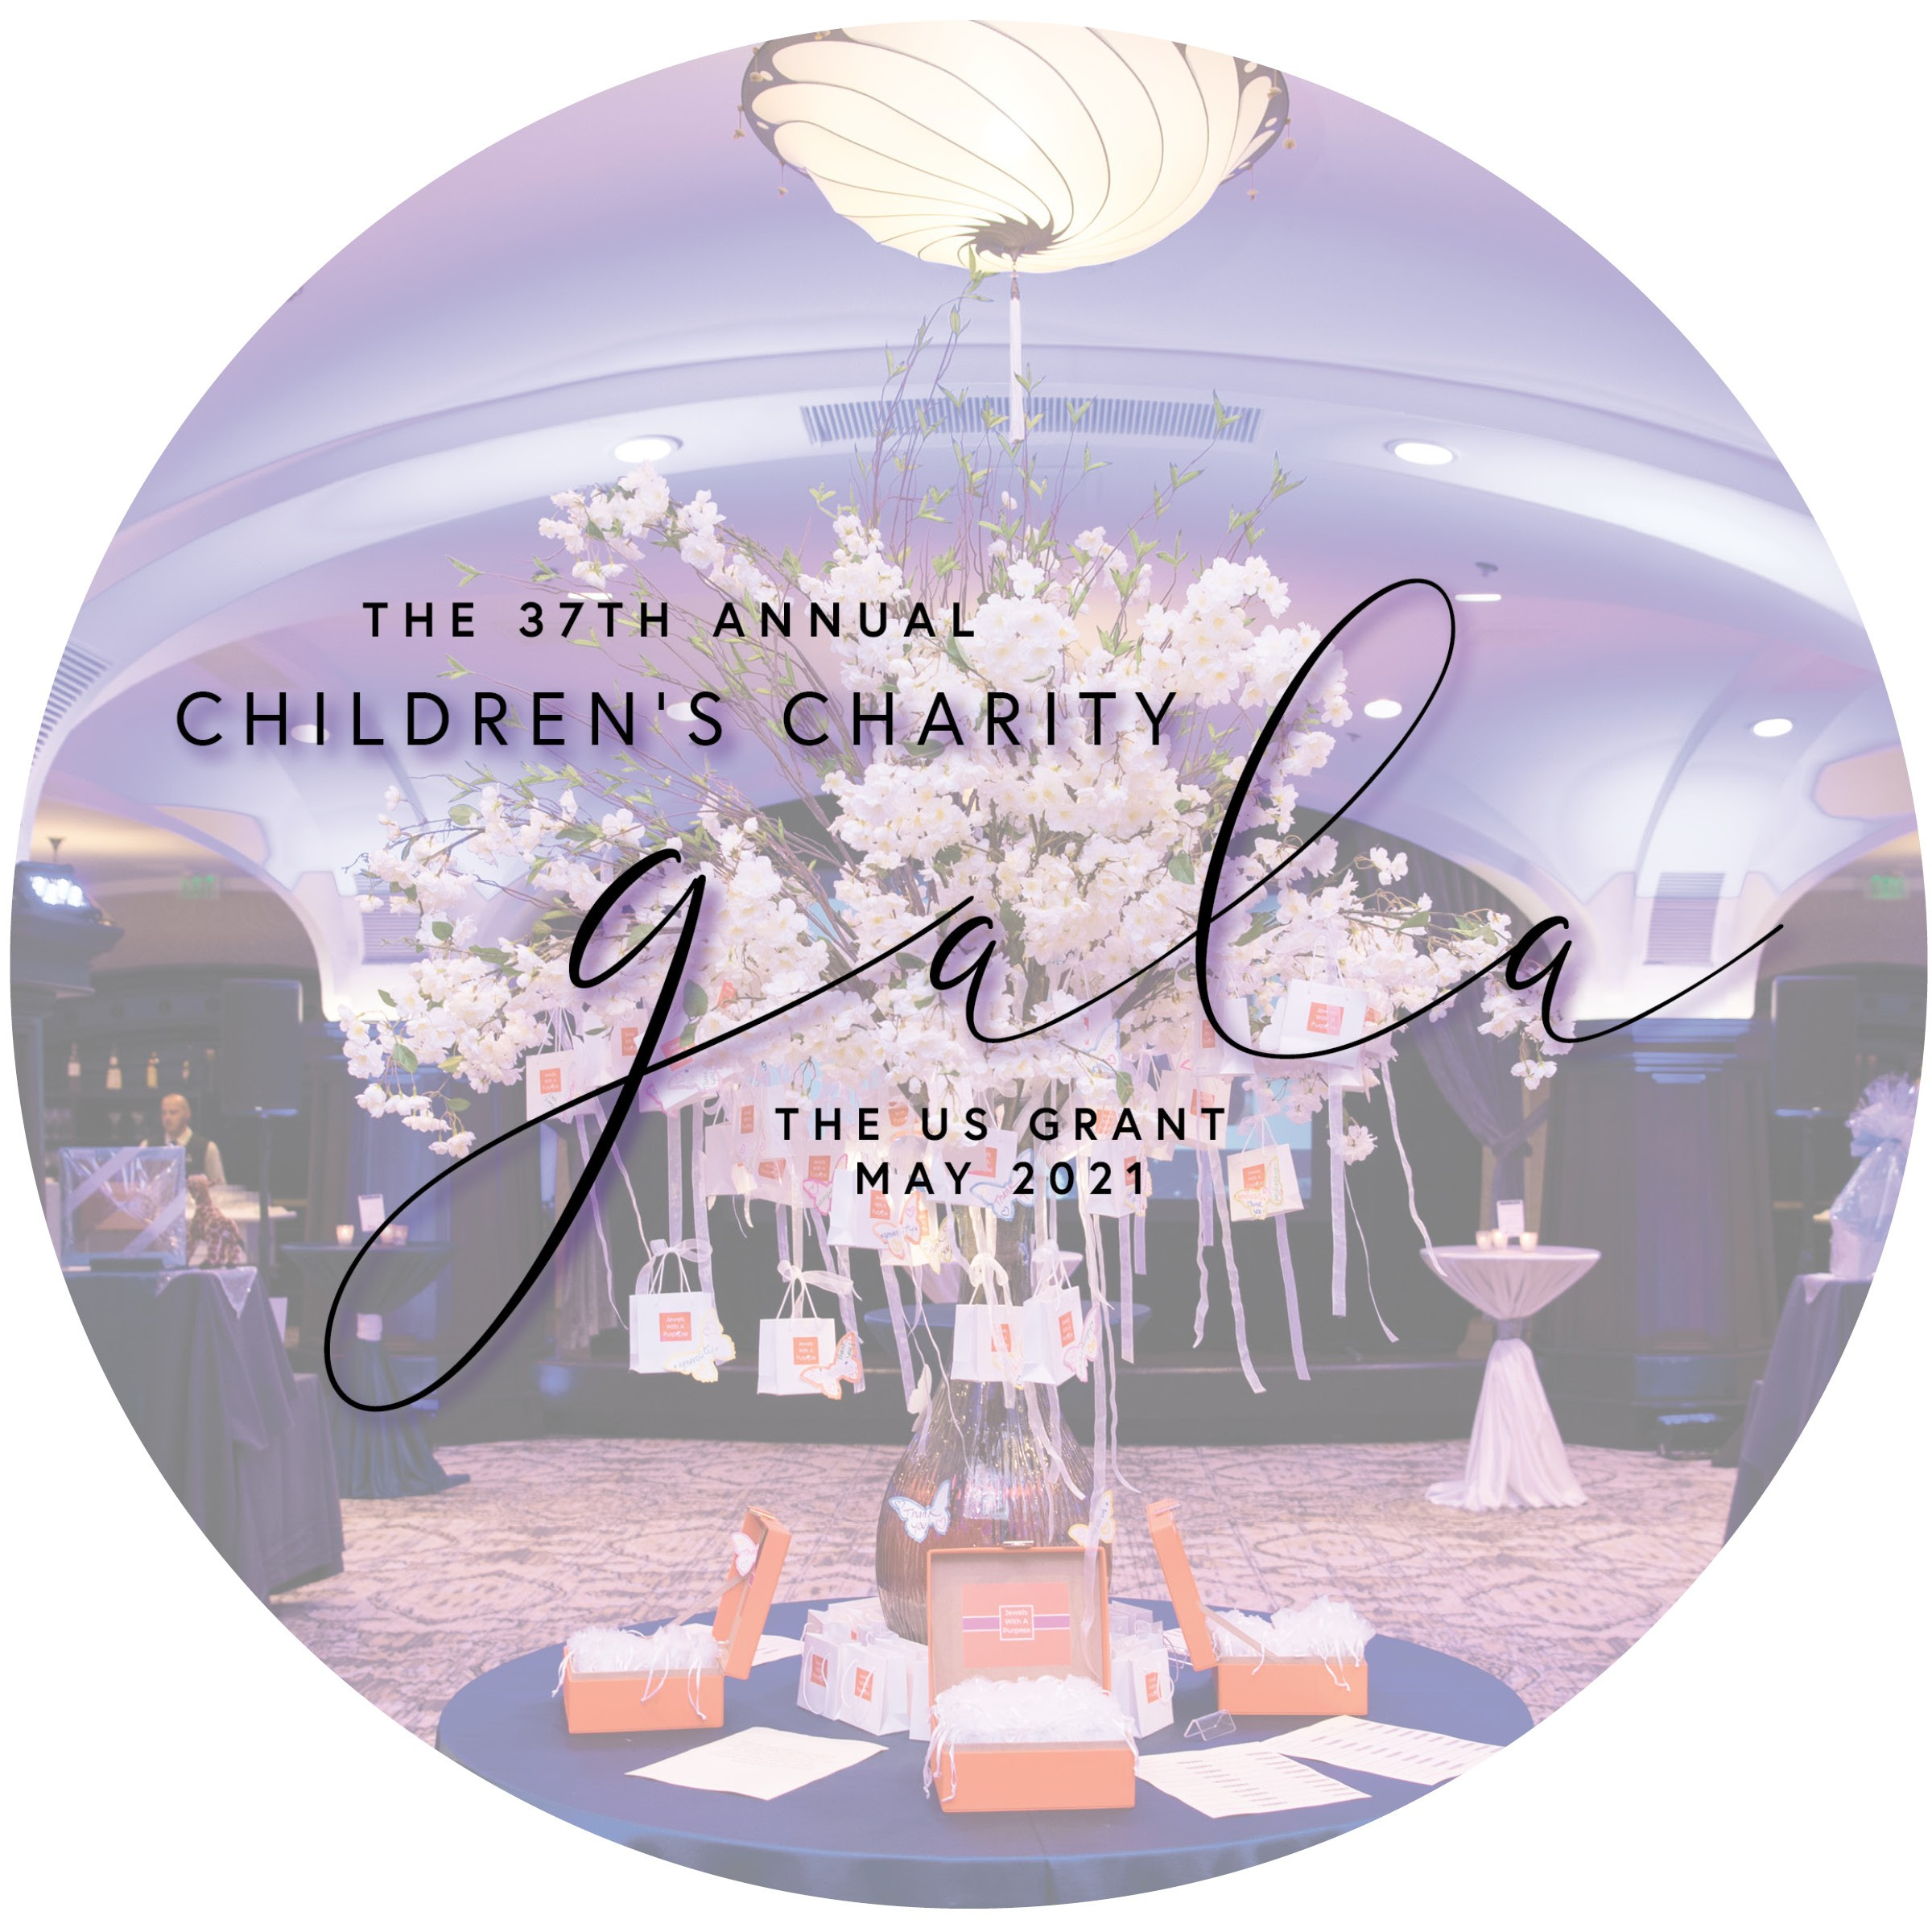 The 37th Annual Children's Charity Gala